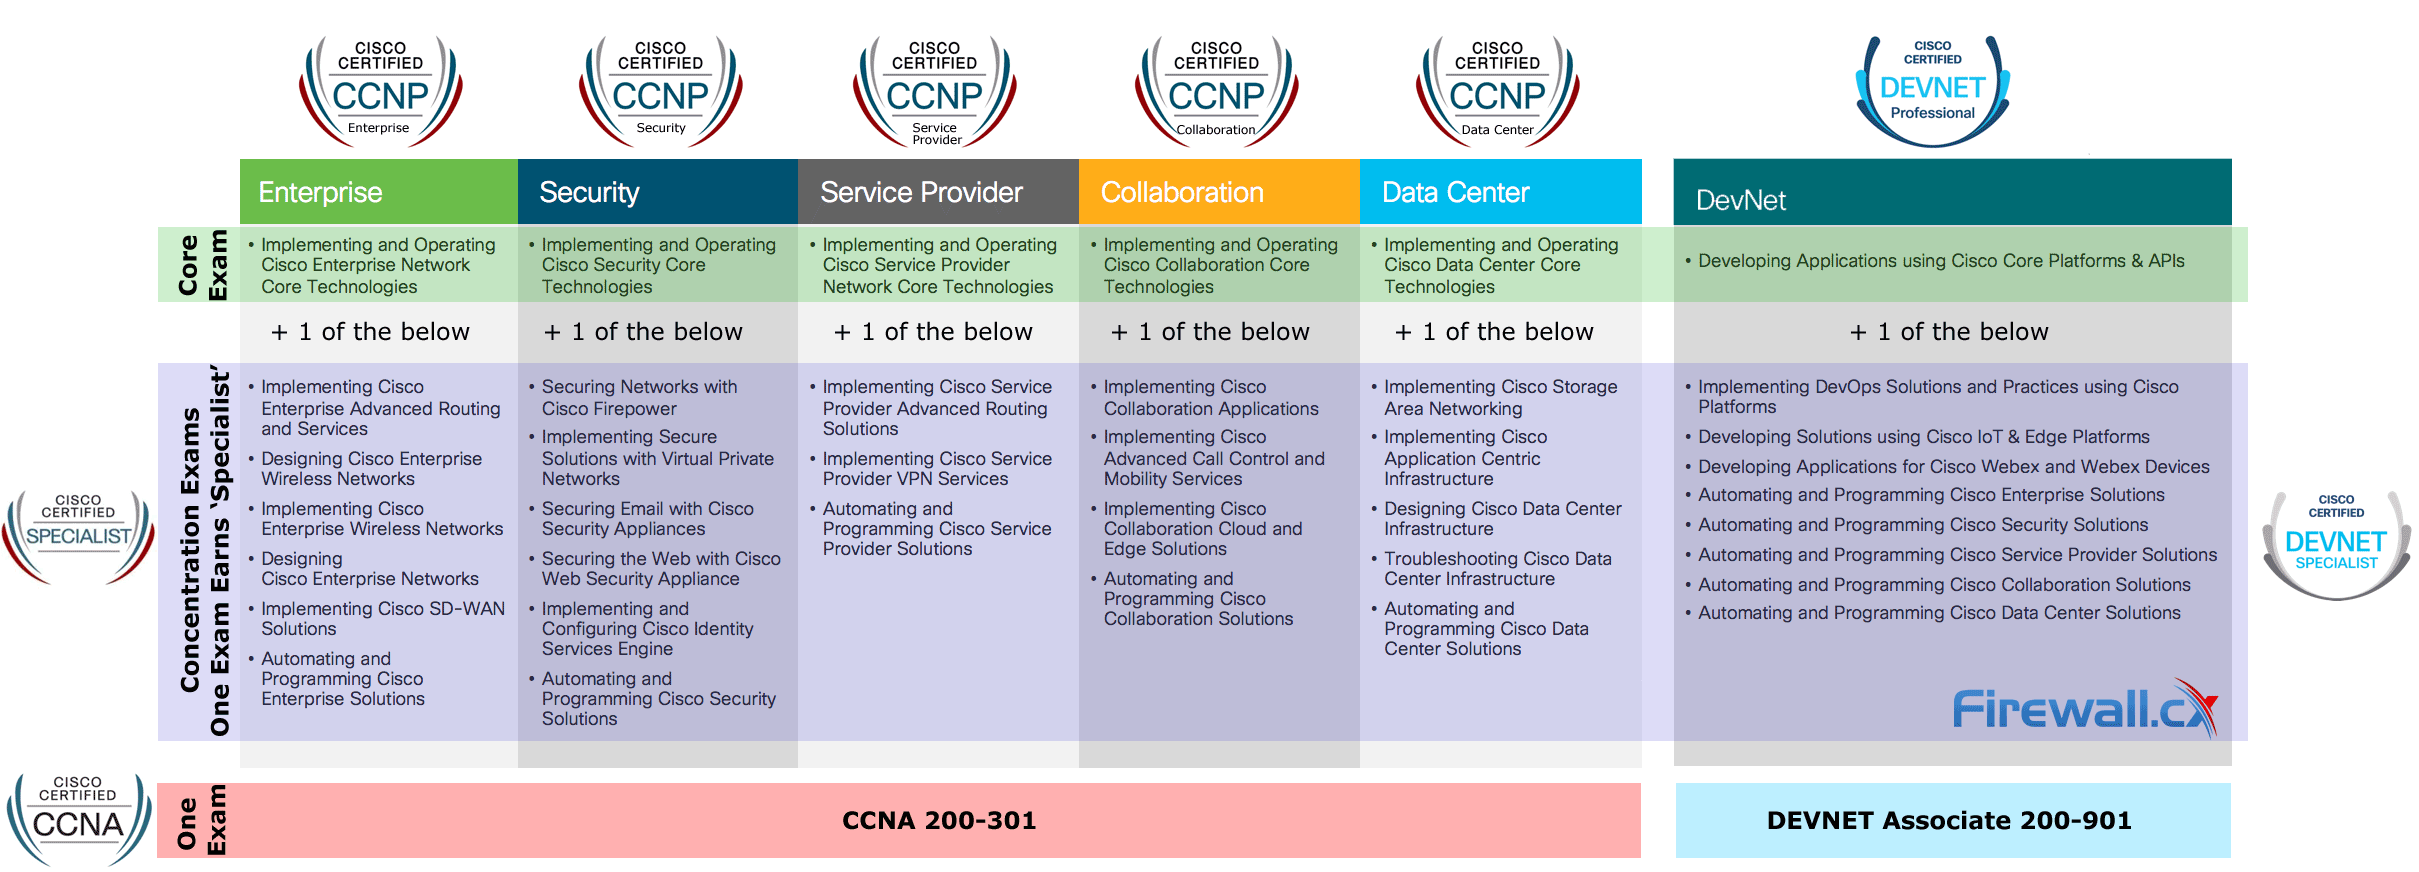 MAJOR CISCO CERTIFICATION CHANGES - NEW CISCO CCNA, CCNP ENTERPRISE, SPECIALIST, DEVNET AND MORE FROM FEB. 2020